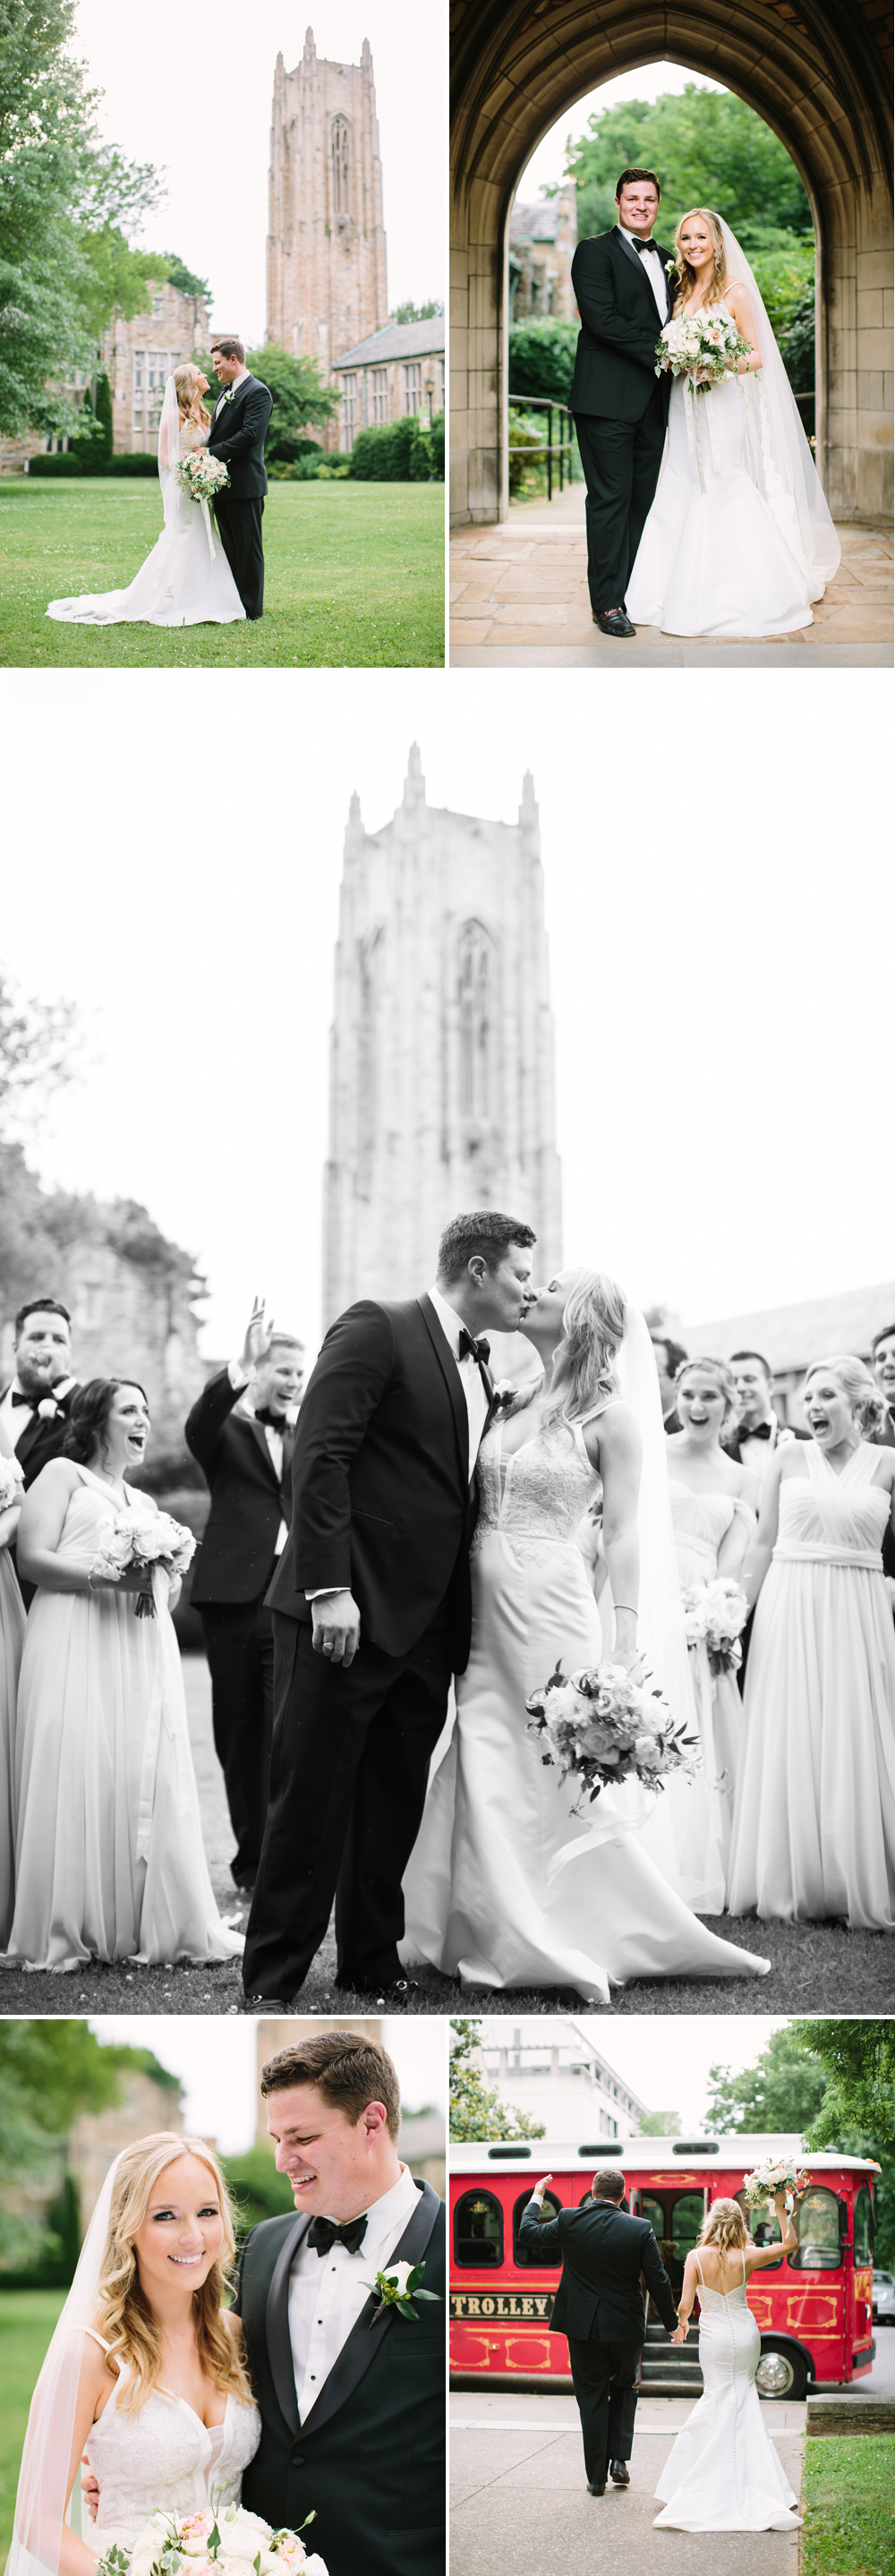 Nashville_Wedding_Photographer_Rachel_Moore_6.jpg